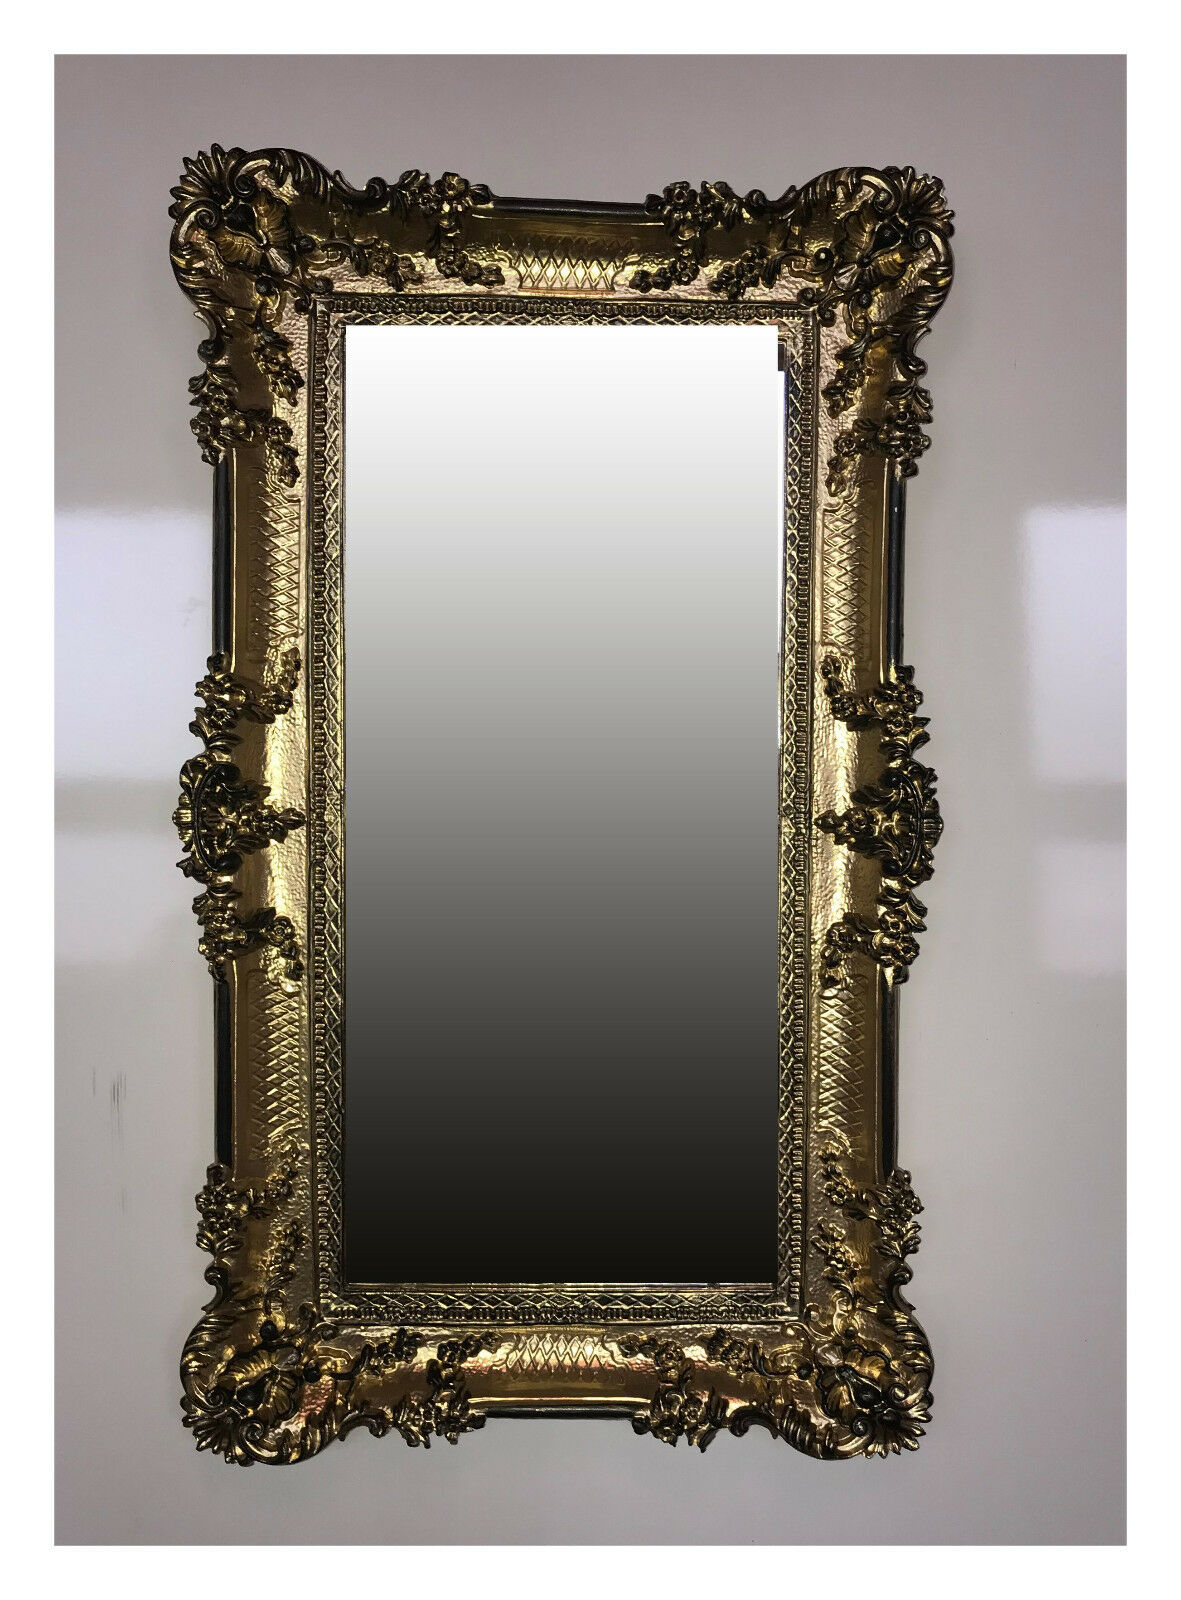 Details About Large Baroque Wall Mirror Antiquity Ornamentation Gold Black 96x57